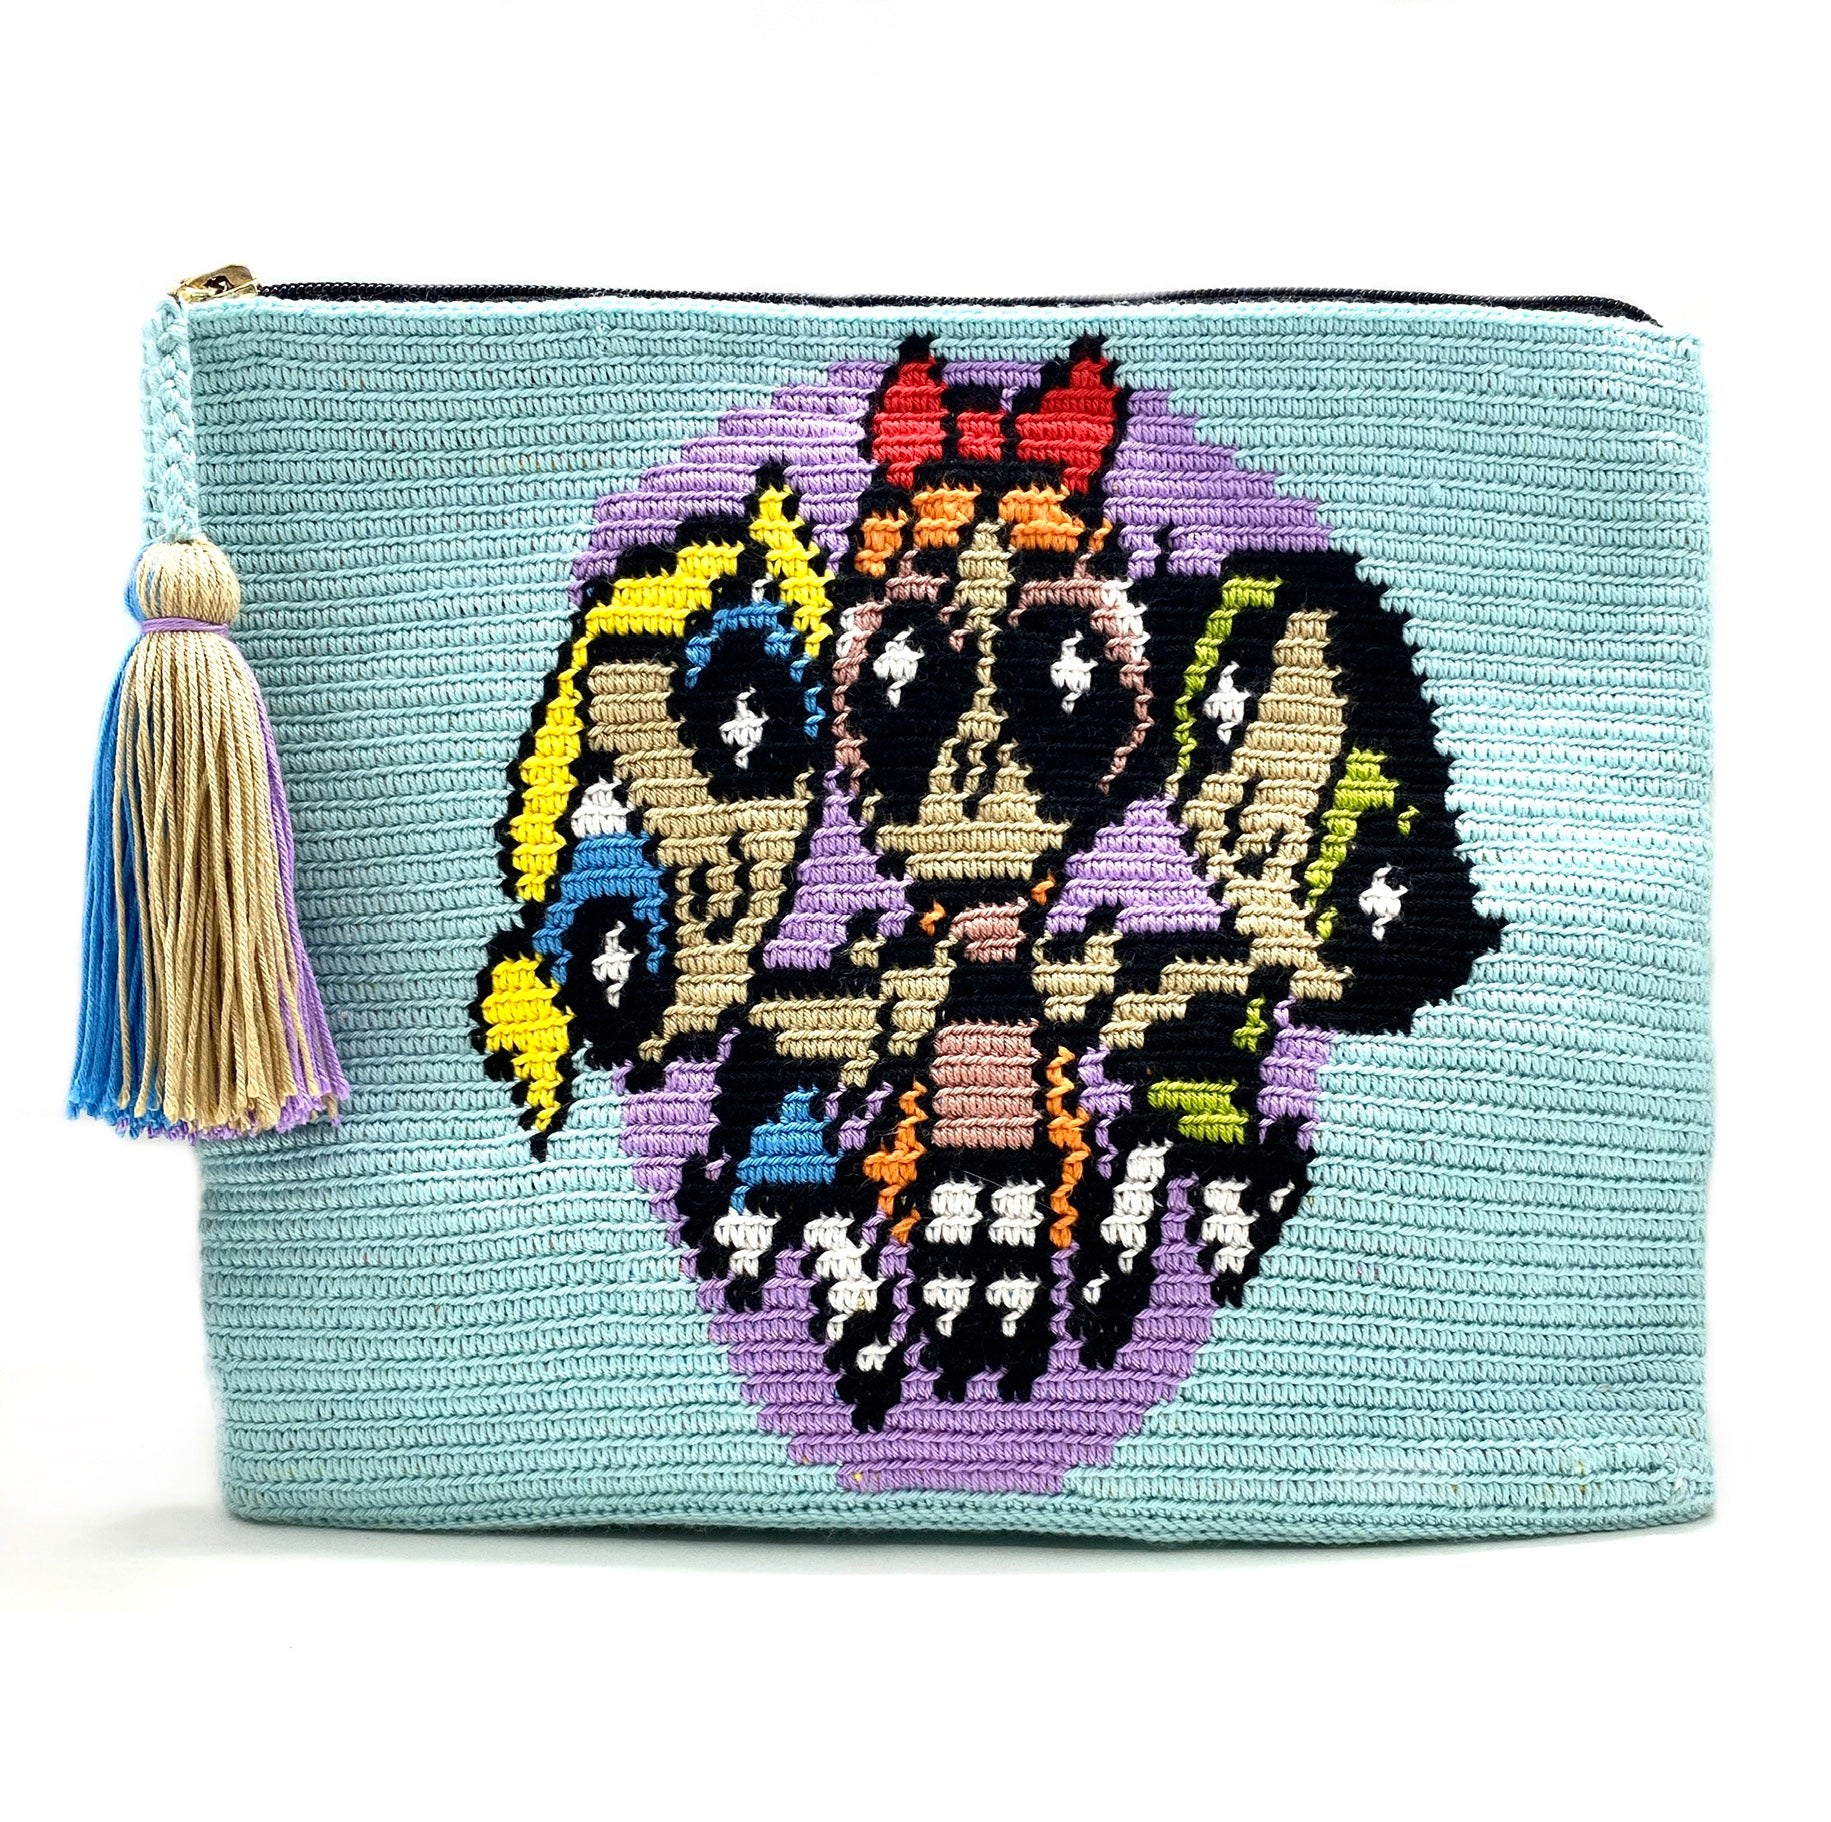 Clutch with baby blue body, the Powerpuff Girls, lavender circle and a lavender, beige, and sky blue tassel